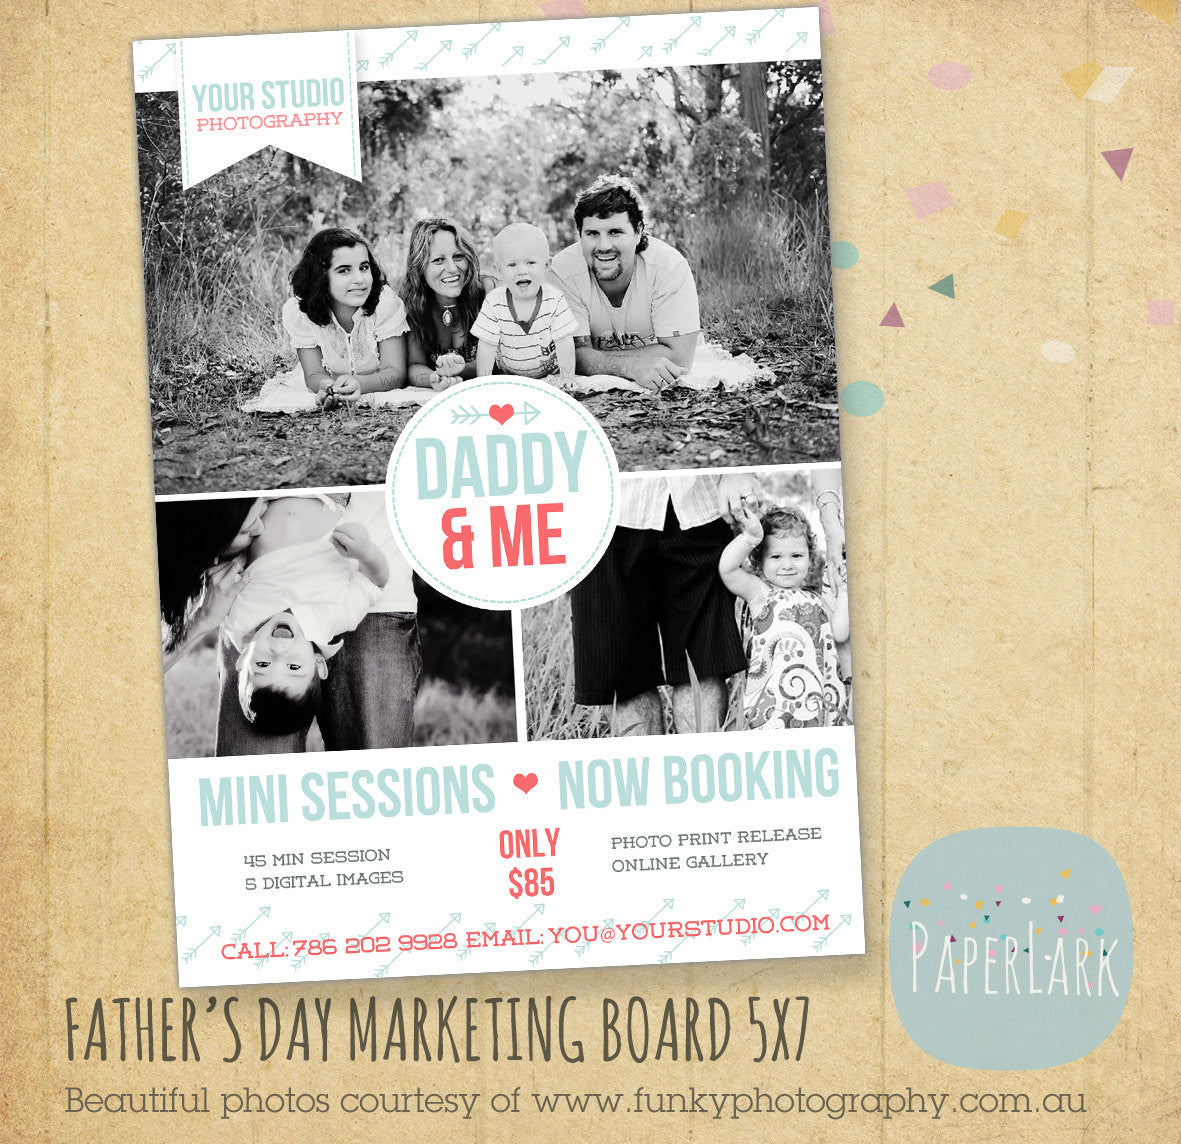 Father\'s Day Marketing Board Template IF009   Paper Lark Designs